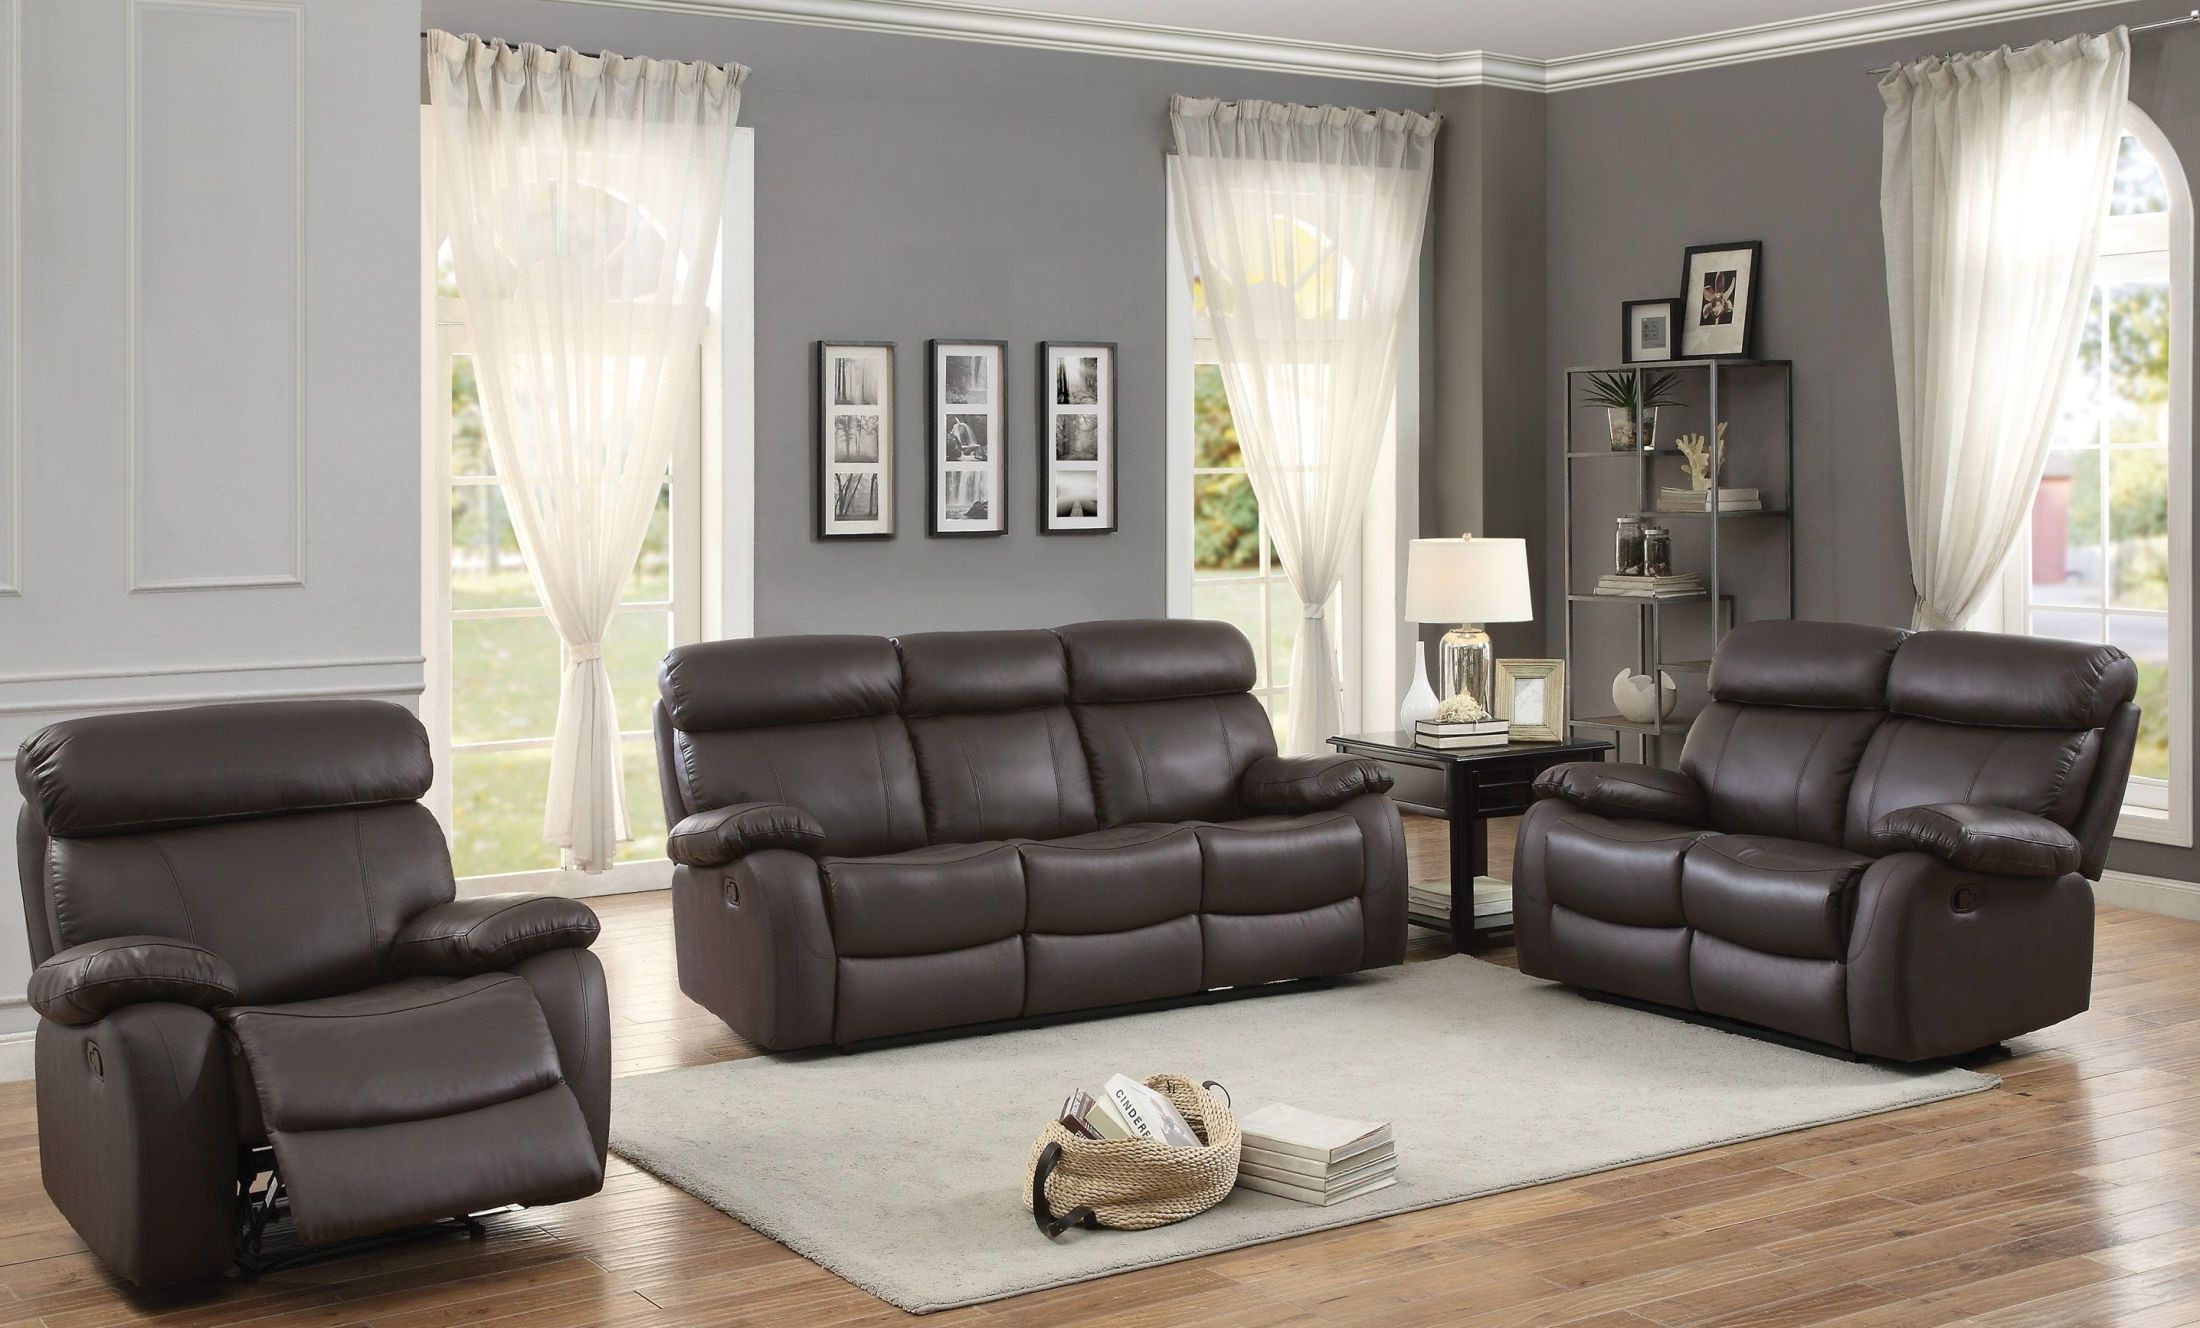 pendu brown double reclining living room set from homelegance coleman furniture